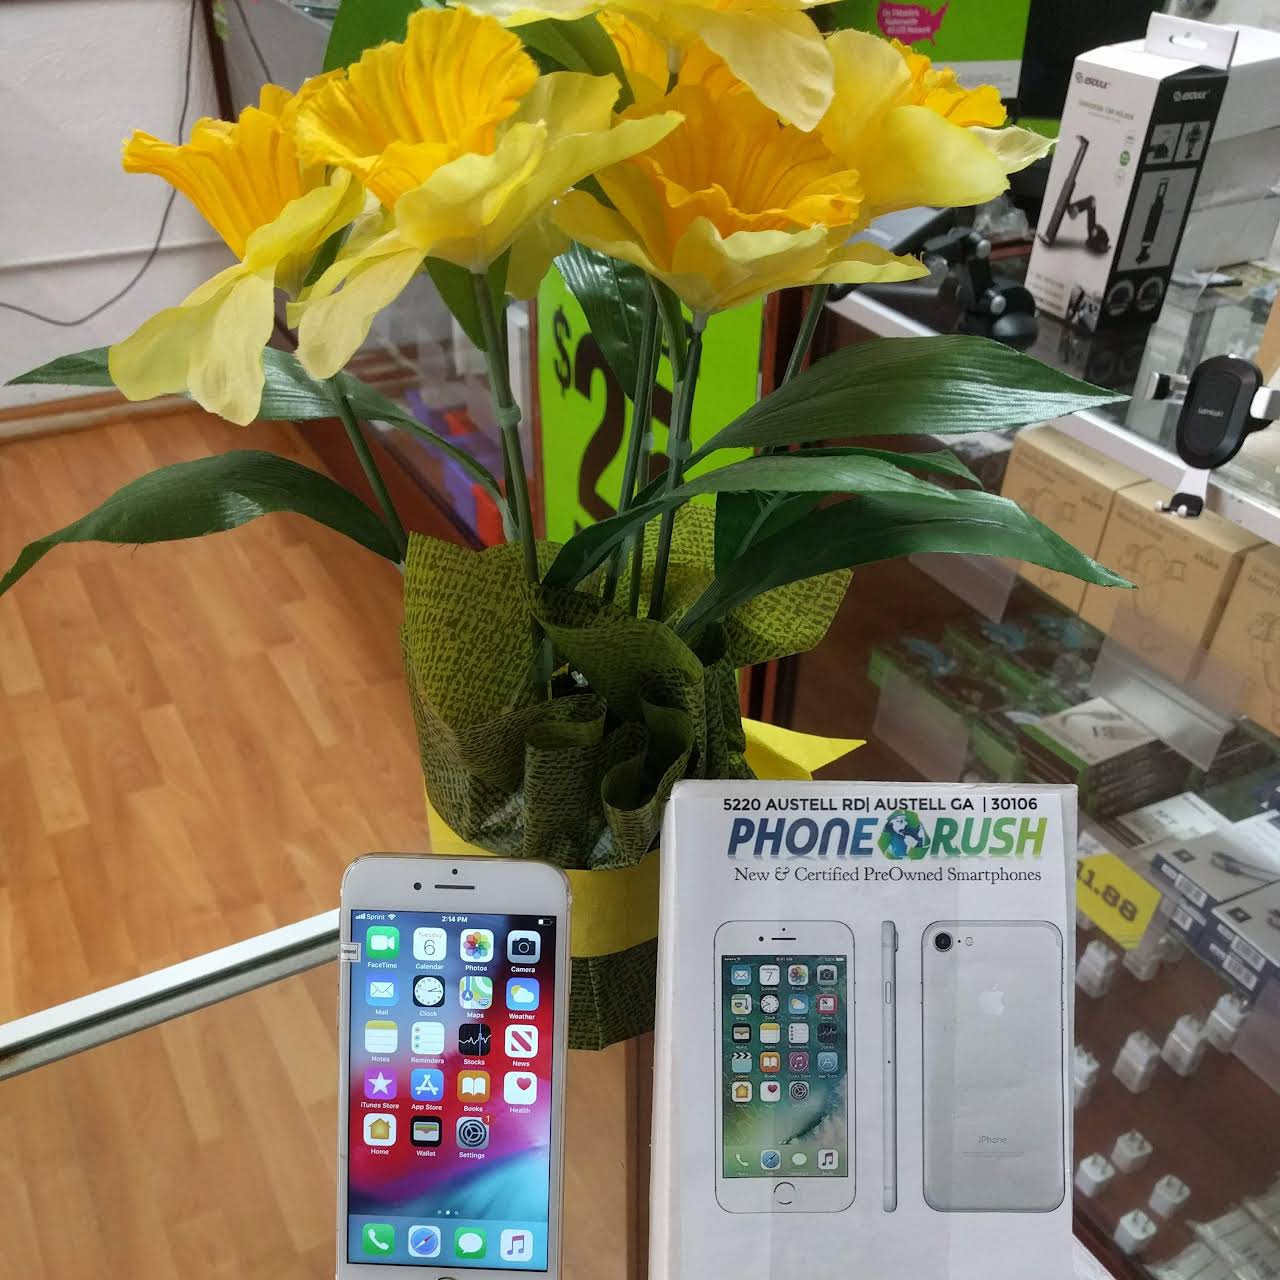 PHONE RUSH - Used and New Cell Phone Store in Austell